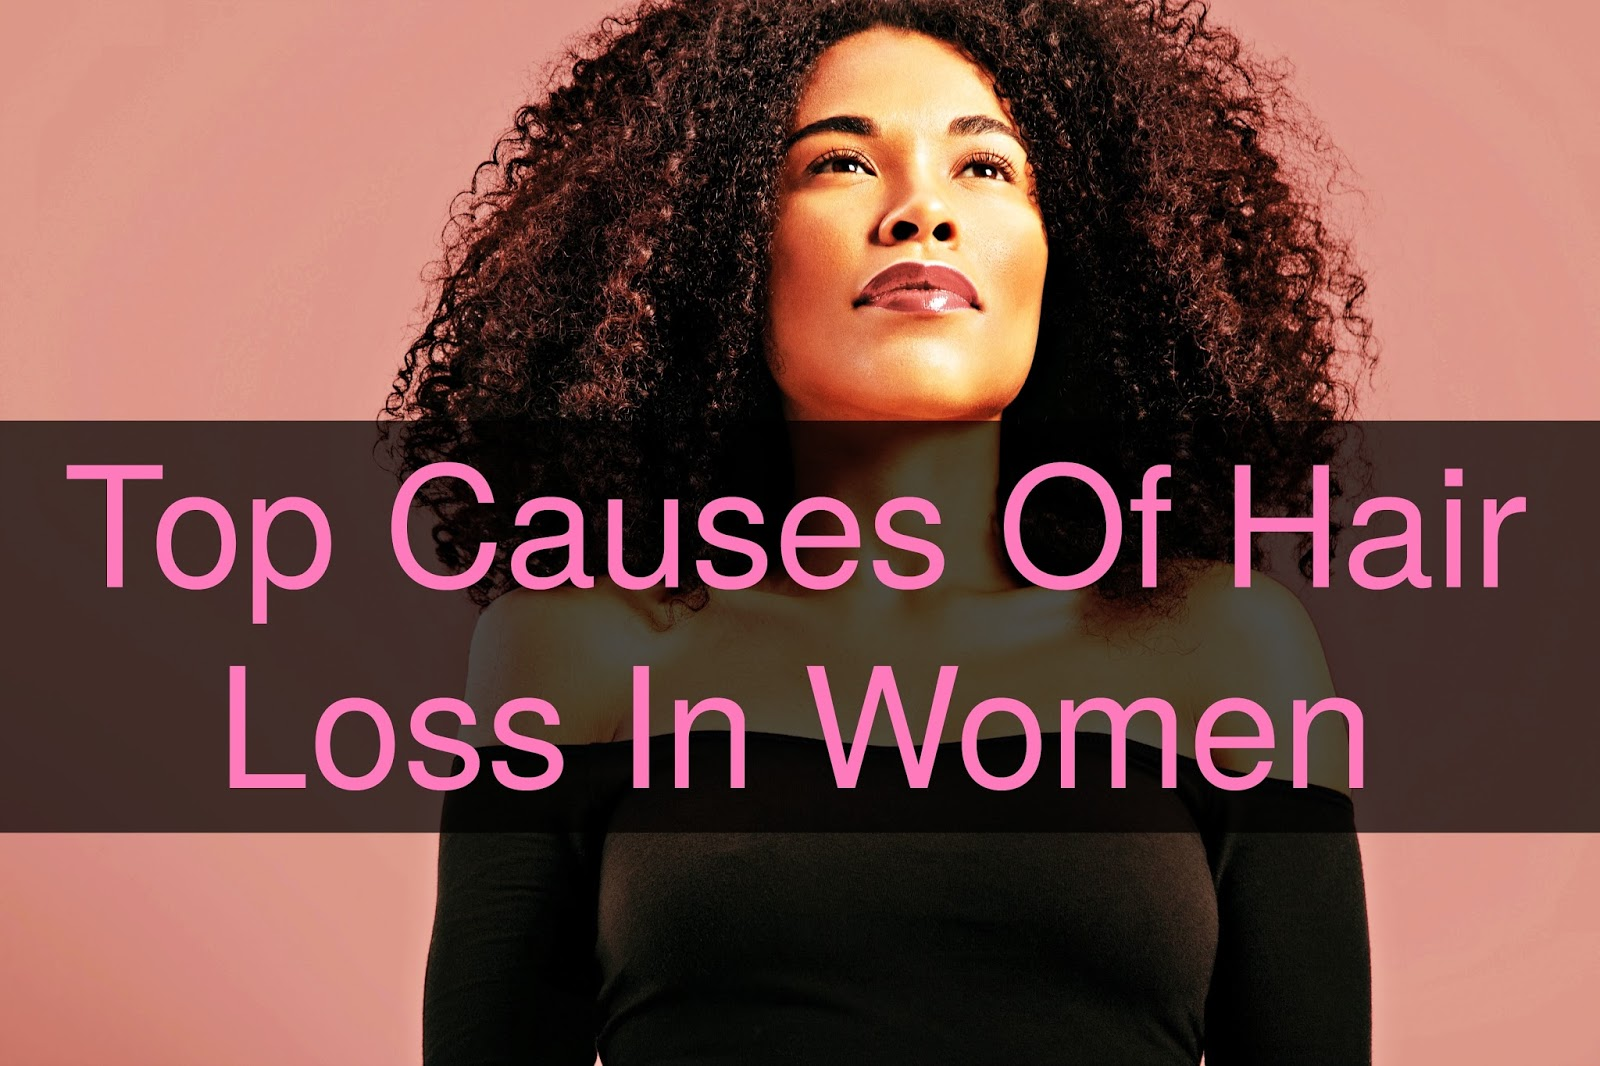 We tackle top causes of women hair loss and how to fight it. From medications to menopause, women are suffering in silence and we don't have to.